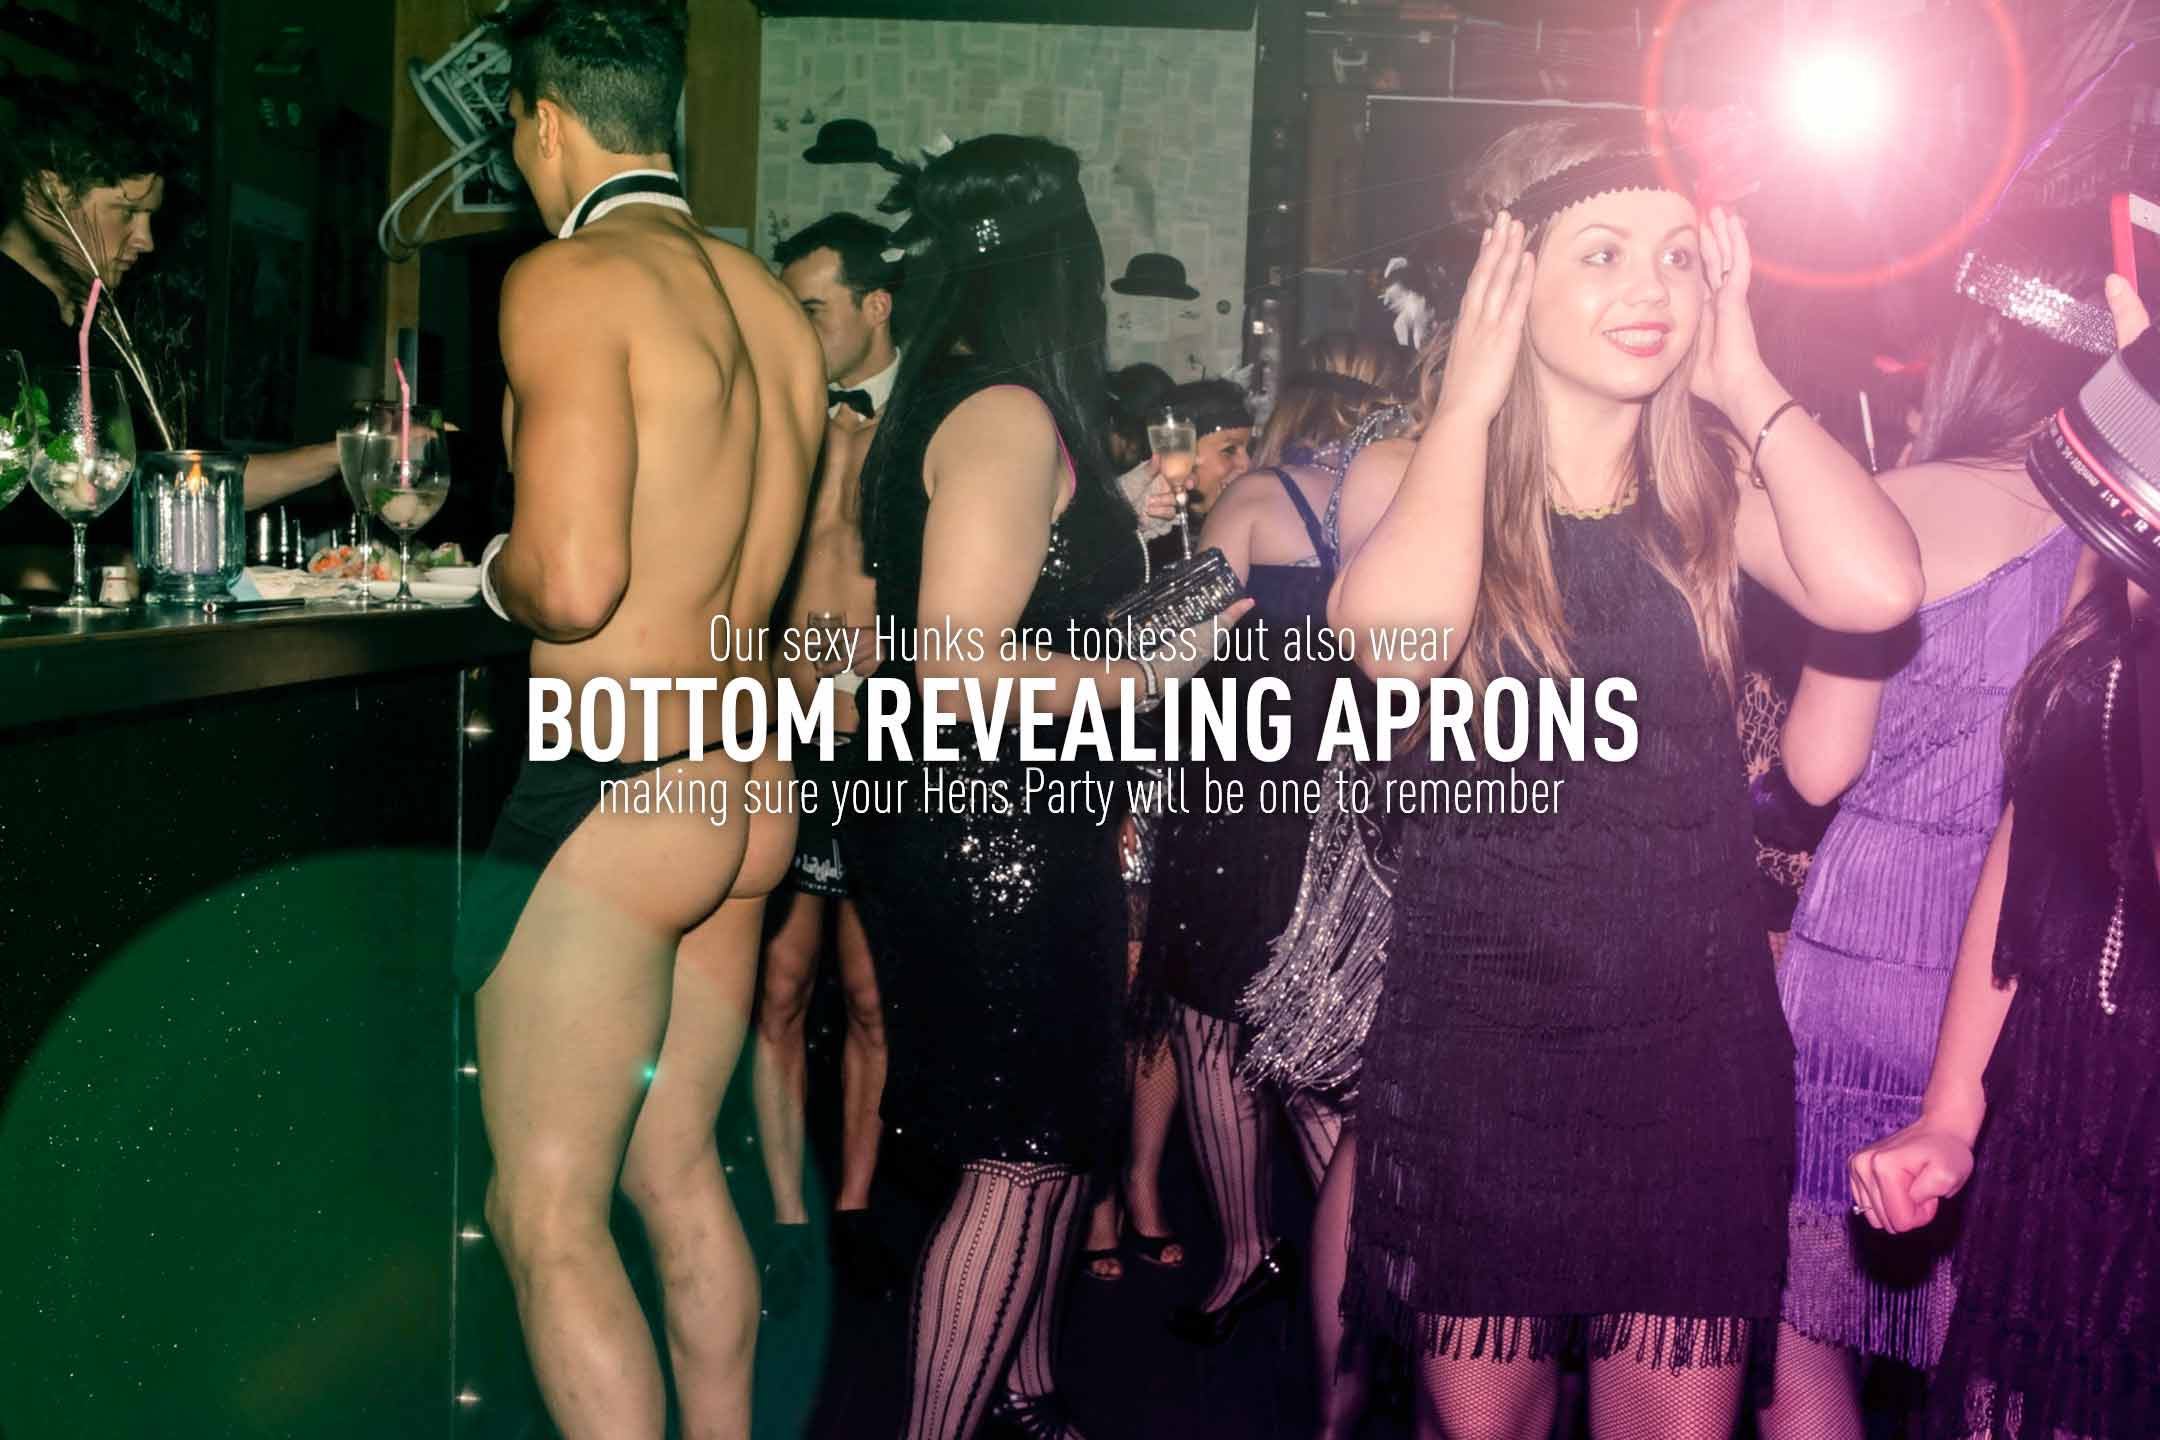 Bottom Revealing Aprons, topless waiters, hens party